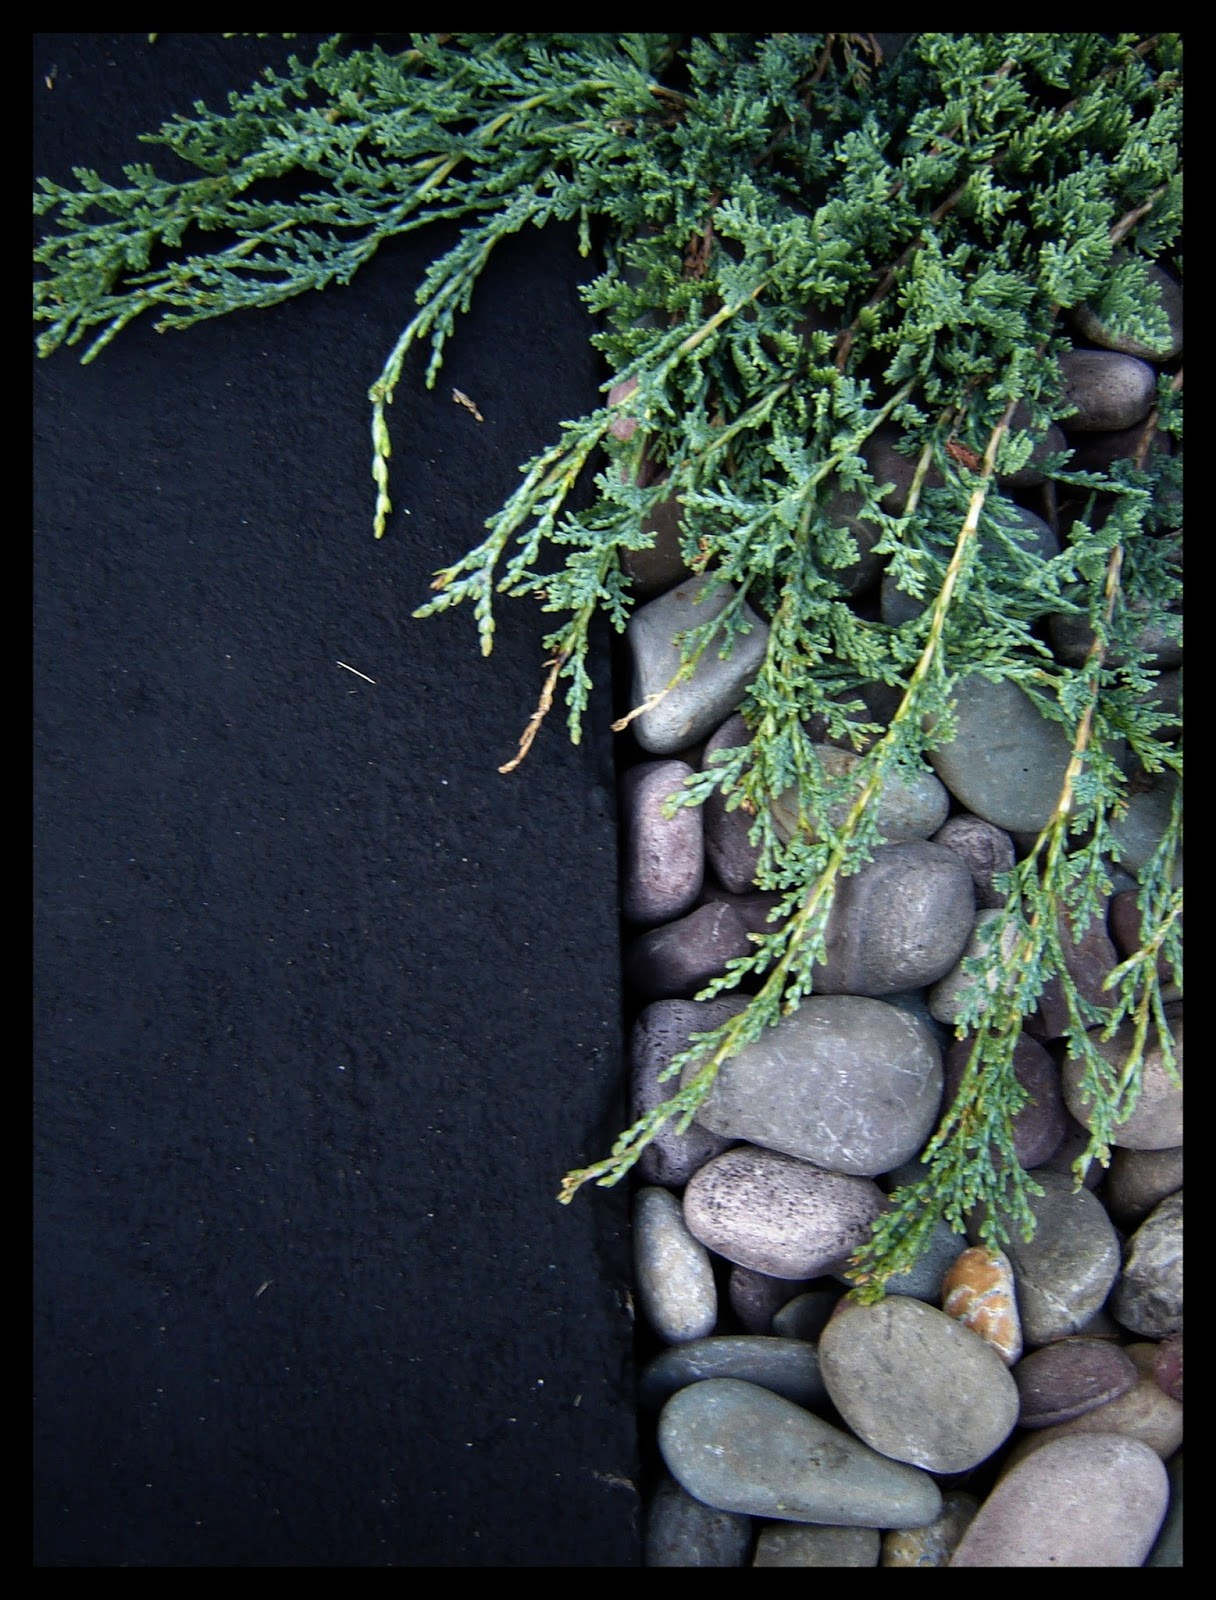 Asphalt Sealcoat - River Rock Juniper